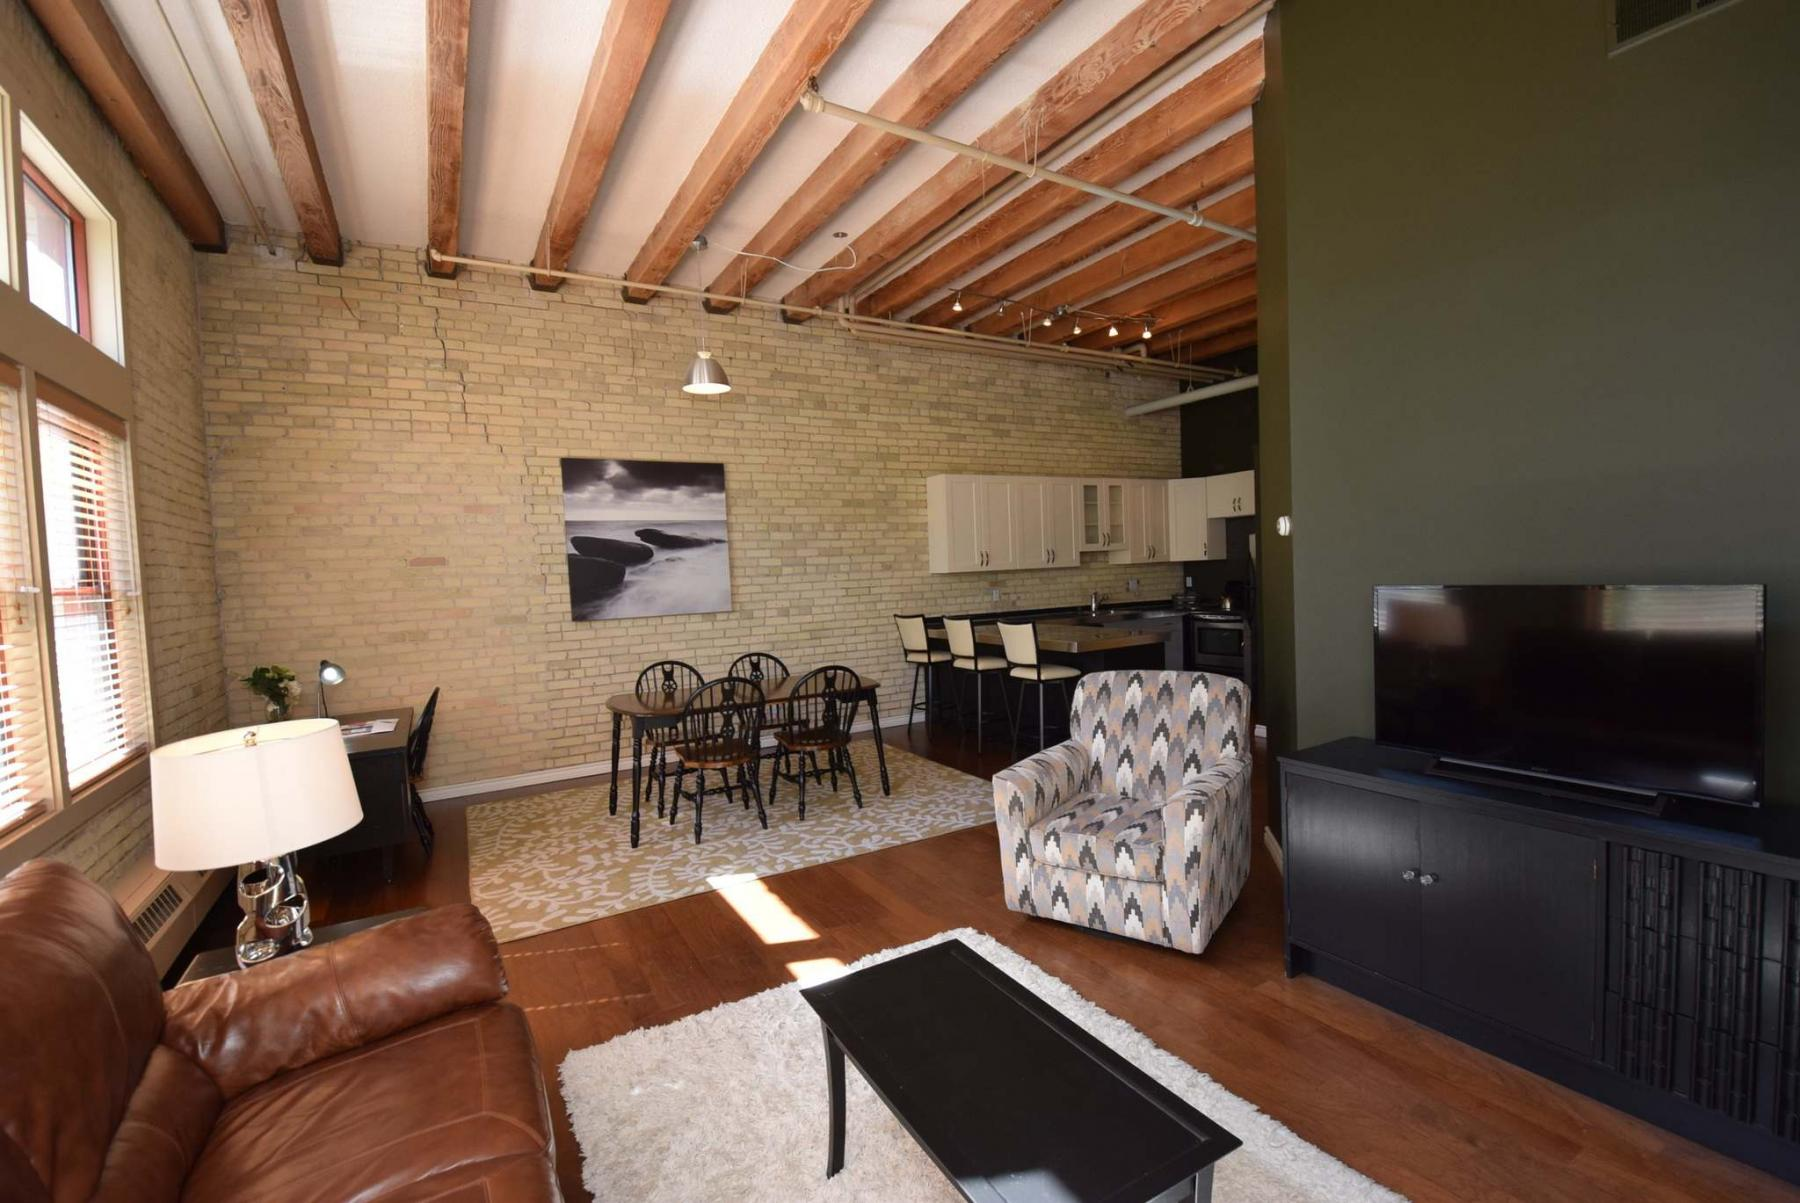 <p>PHOTOS BY TODD LEWYS / WINNIPEG FREE PRESS</p><p>The beams and exposed brick of the condo&rsquo;s great room recall the history of the Ashdown Warehouse.</p>